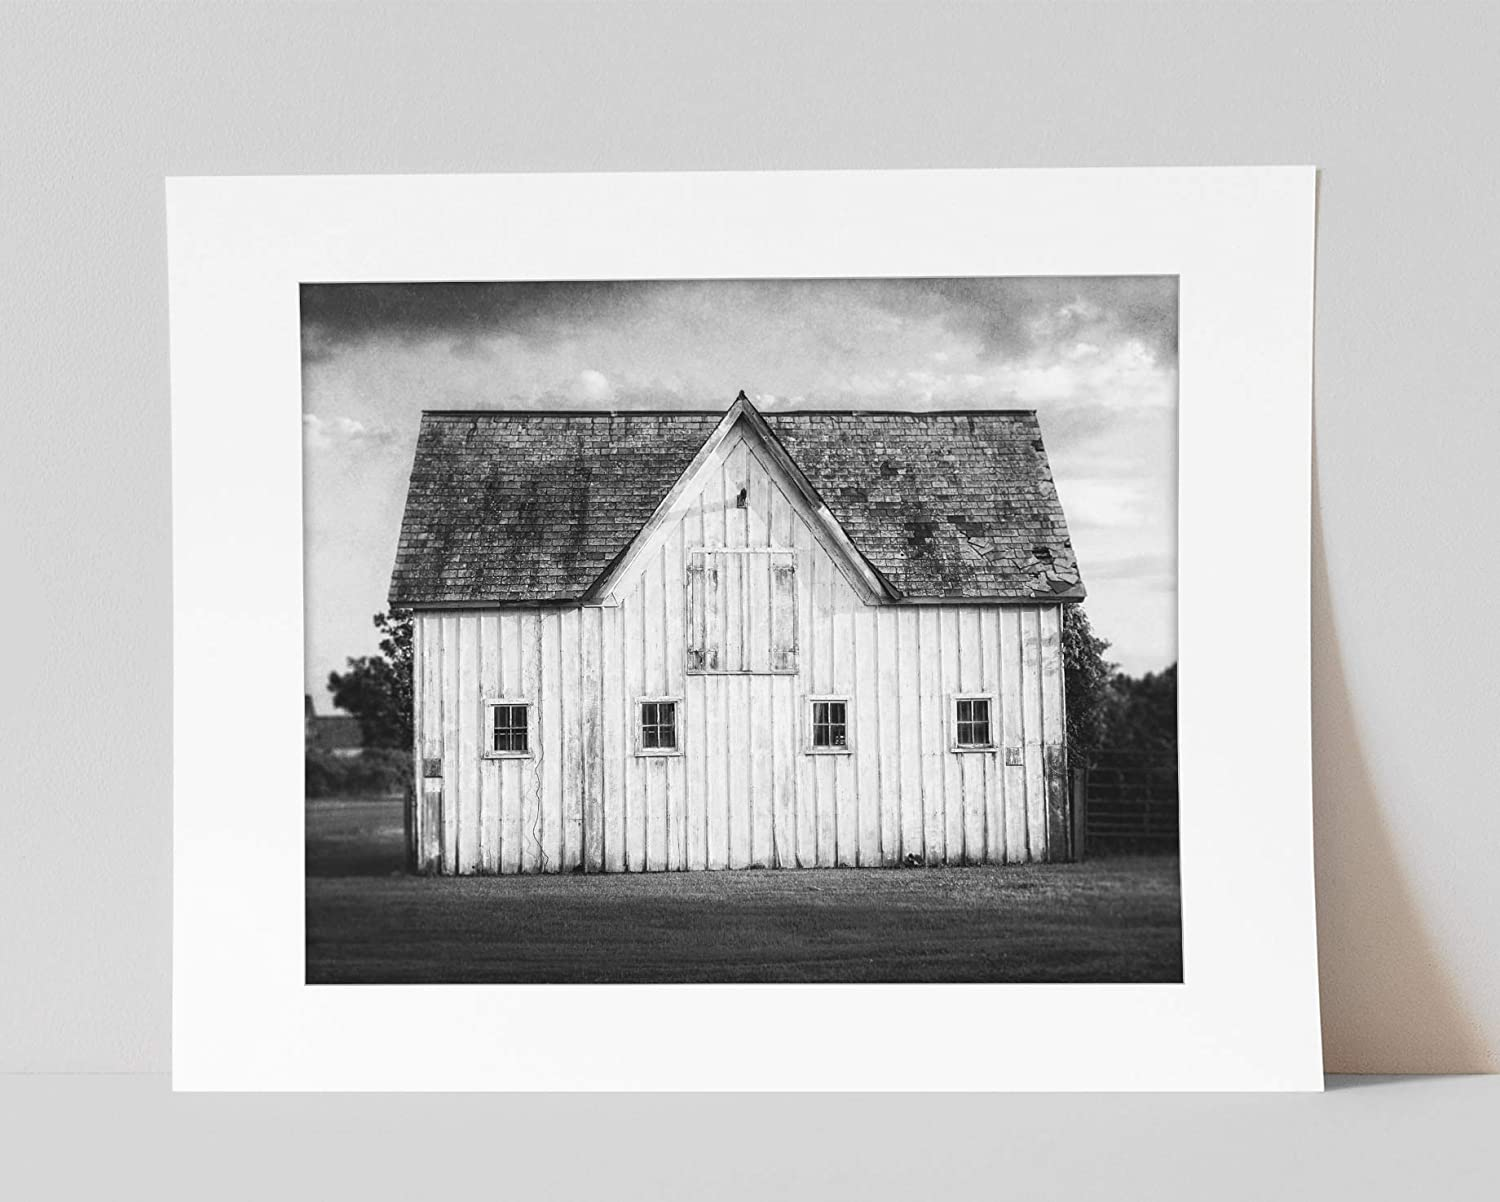 Amazon Com Black And White Modern Farmhouse Wall Art Decor Pre Matted 8x10 Print Not Framed Fits 11x14 Frame Rustic Country White Barn Landscape Artwork Handmade